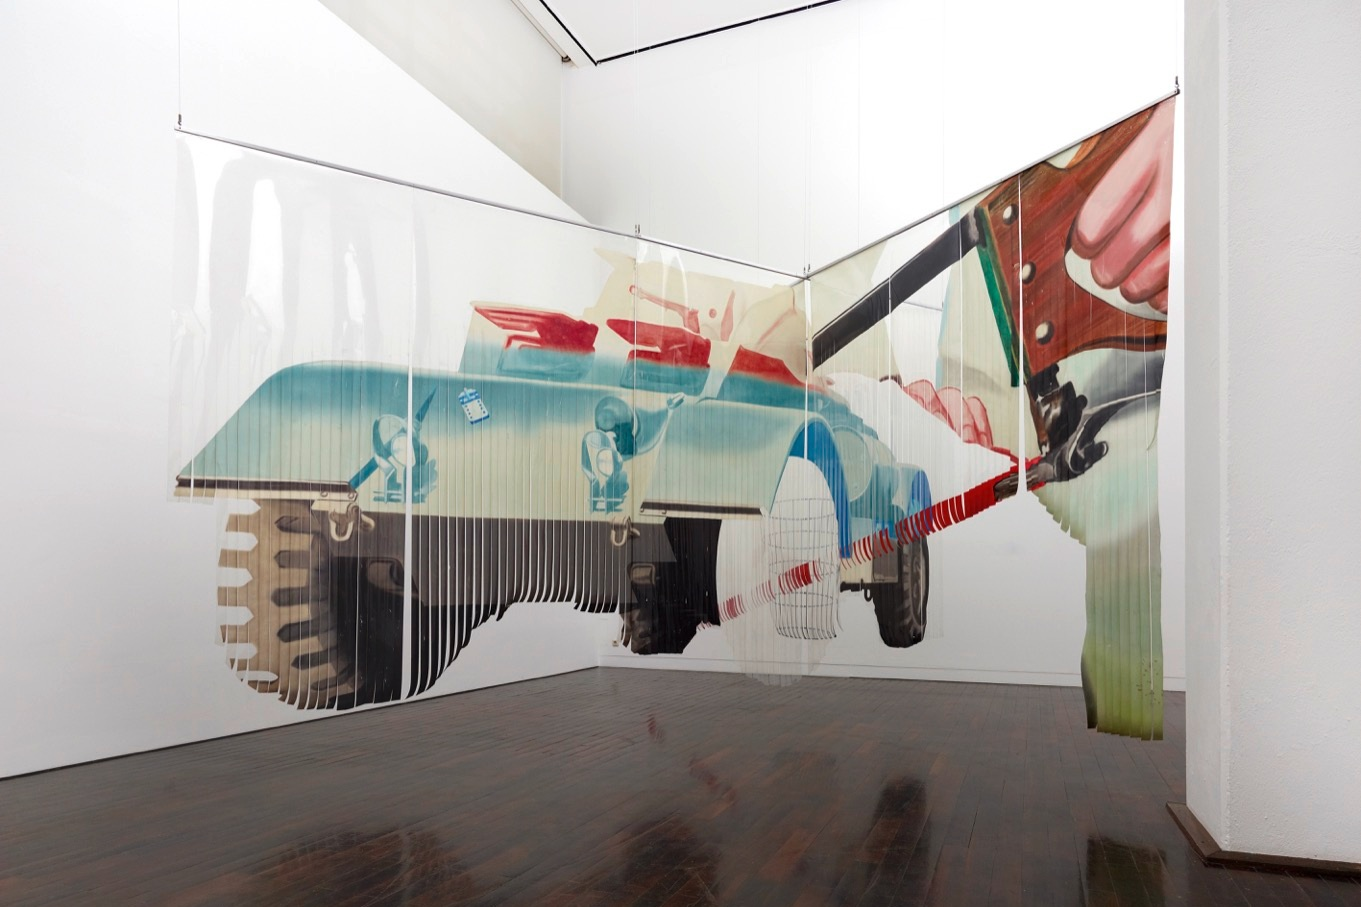 James Rosenquist,  Forest Ranger , 1967. Oil on slit and shaped Mylar. Three panels (two intersecting and one freestanding), each approx: 289.6 cm (114,02 in). Courtesy Museum Ludwig, Cologne. Photo: © Rheinisches Bildarchiv, Albers, Michael